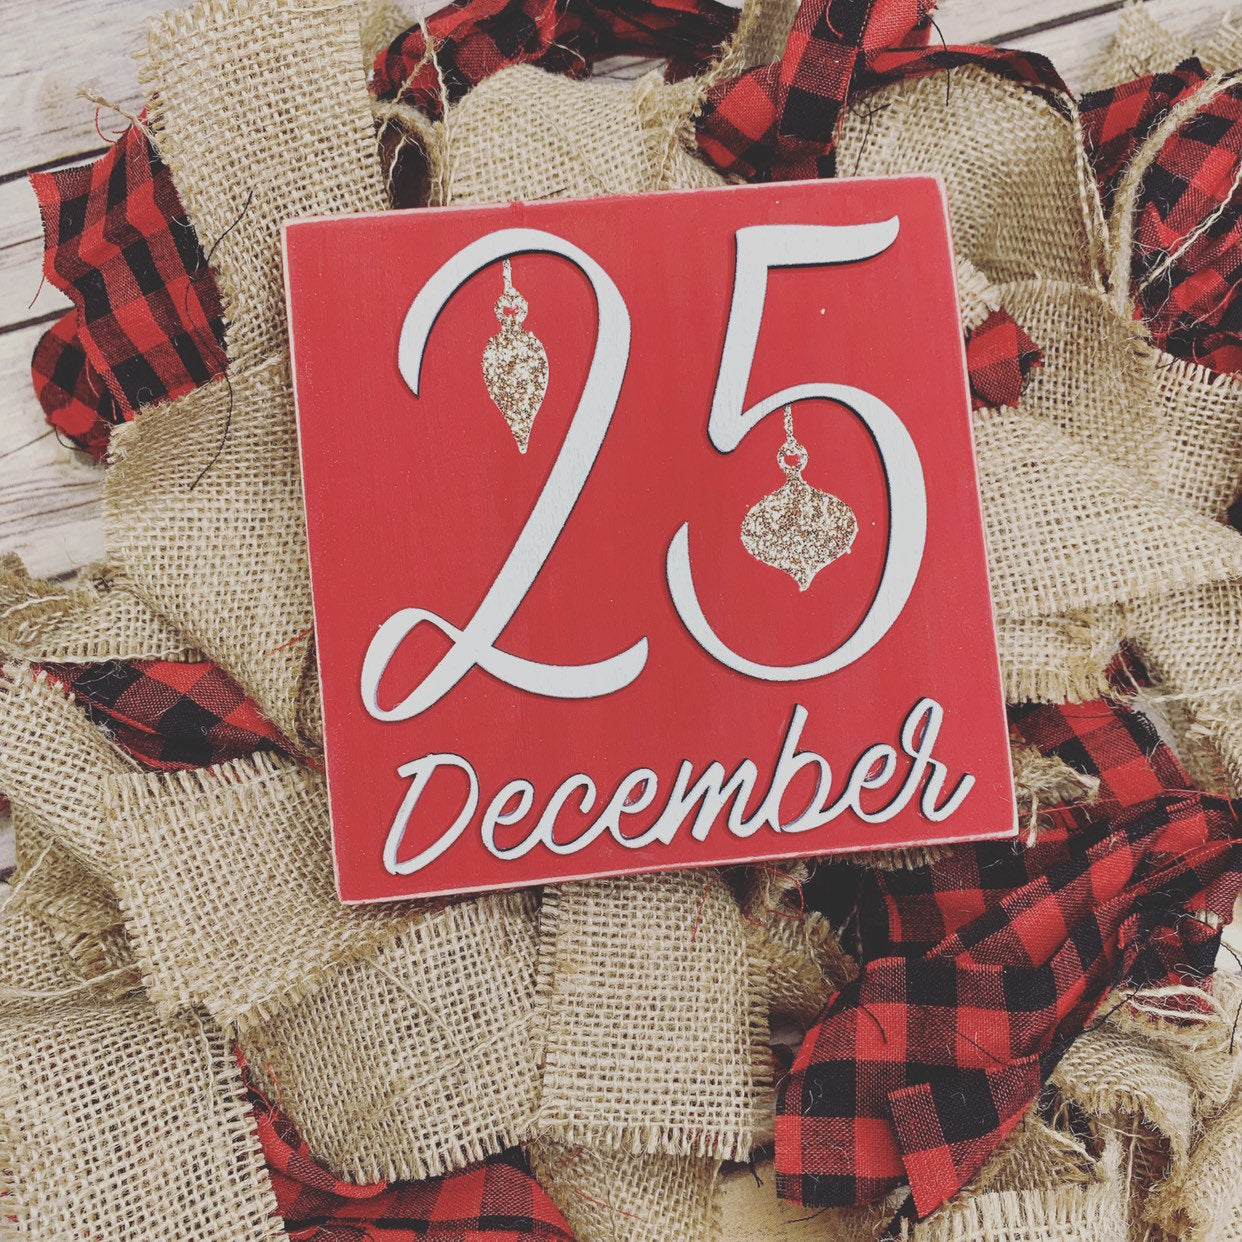 25 December Christmas Red 3D Wood Sign | Christmas sign | Small wood sign | Christmas Decor | Christmas | December Sign | Tiered tray